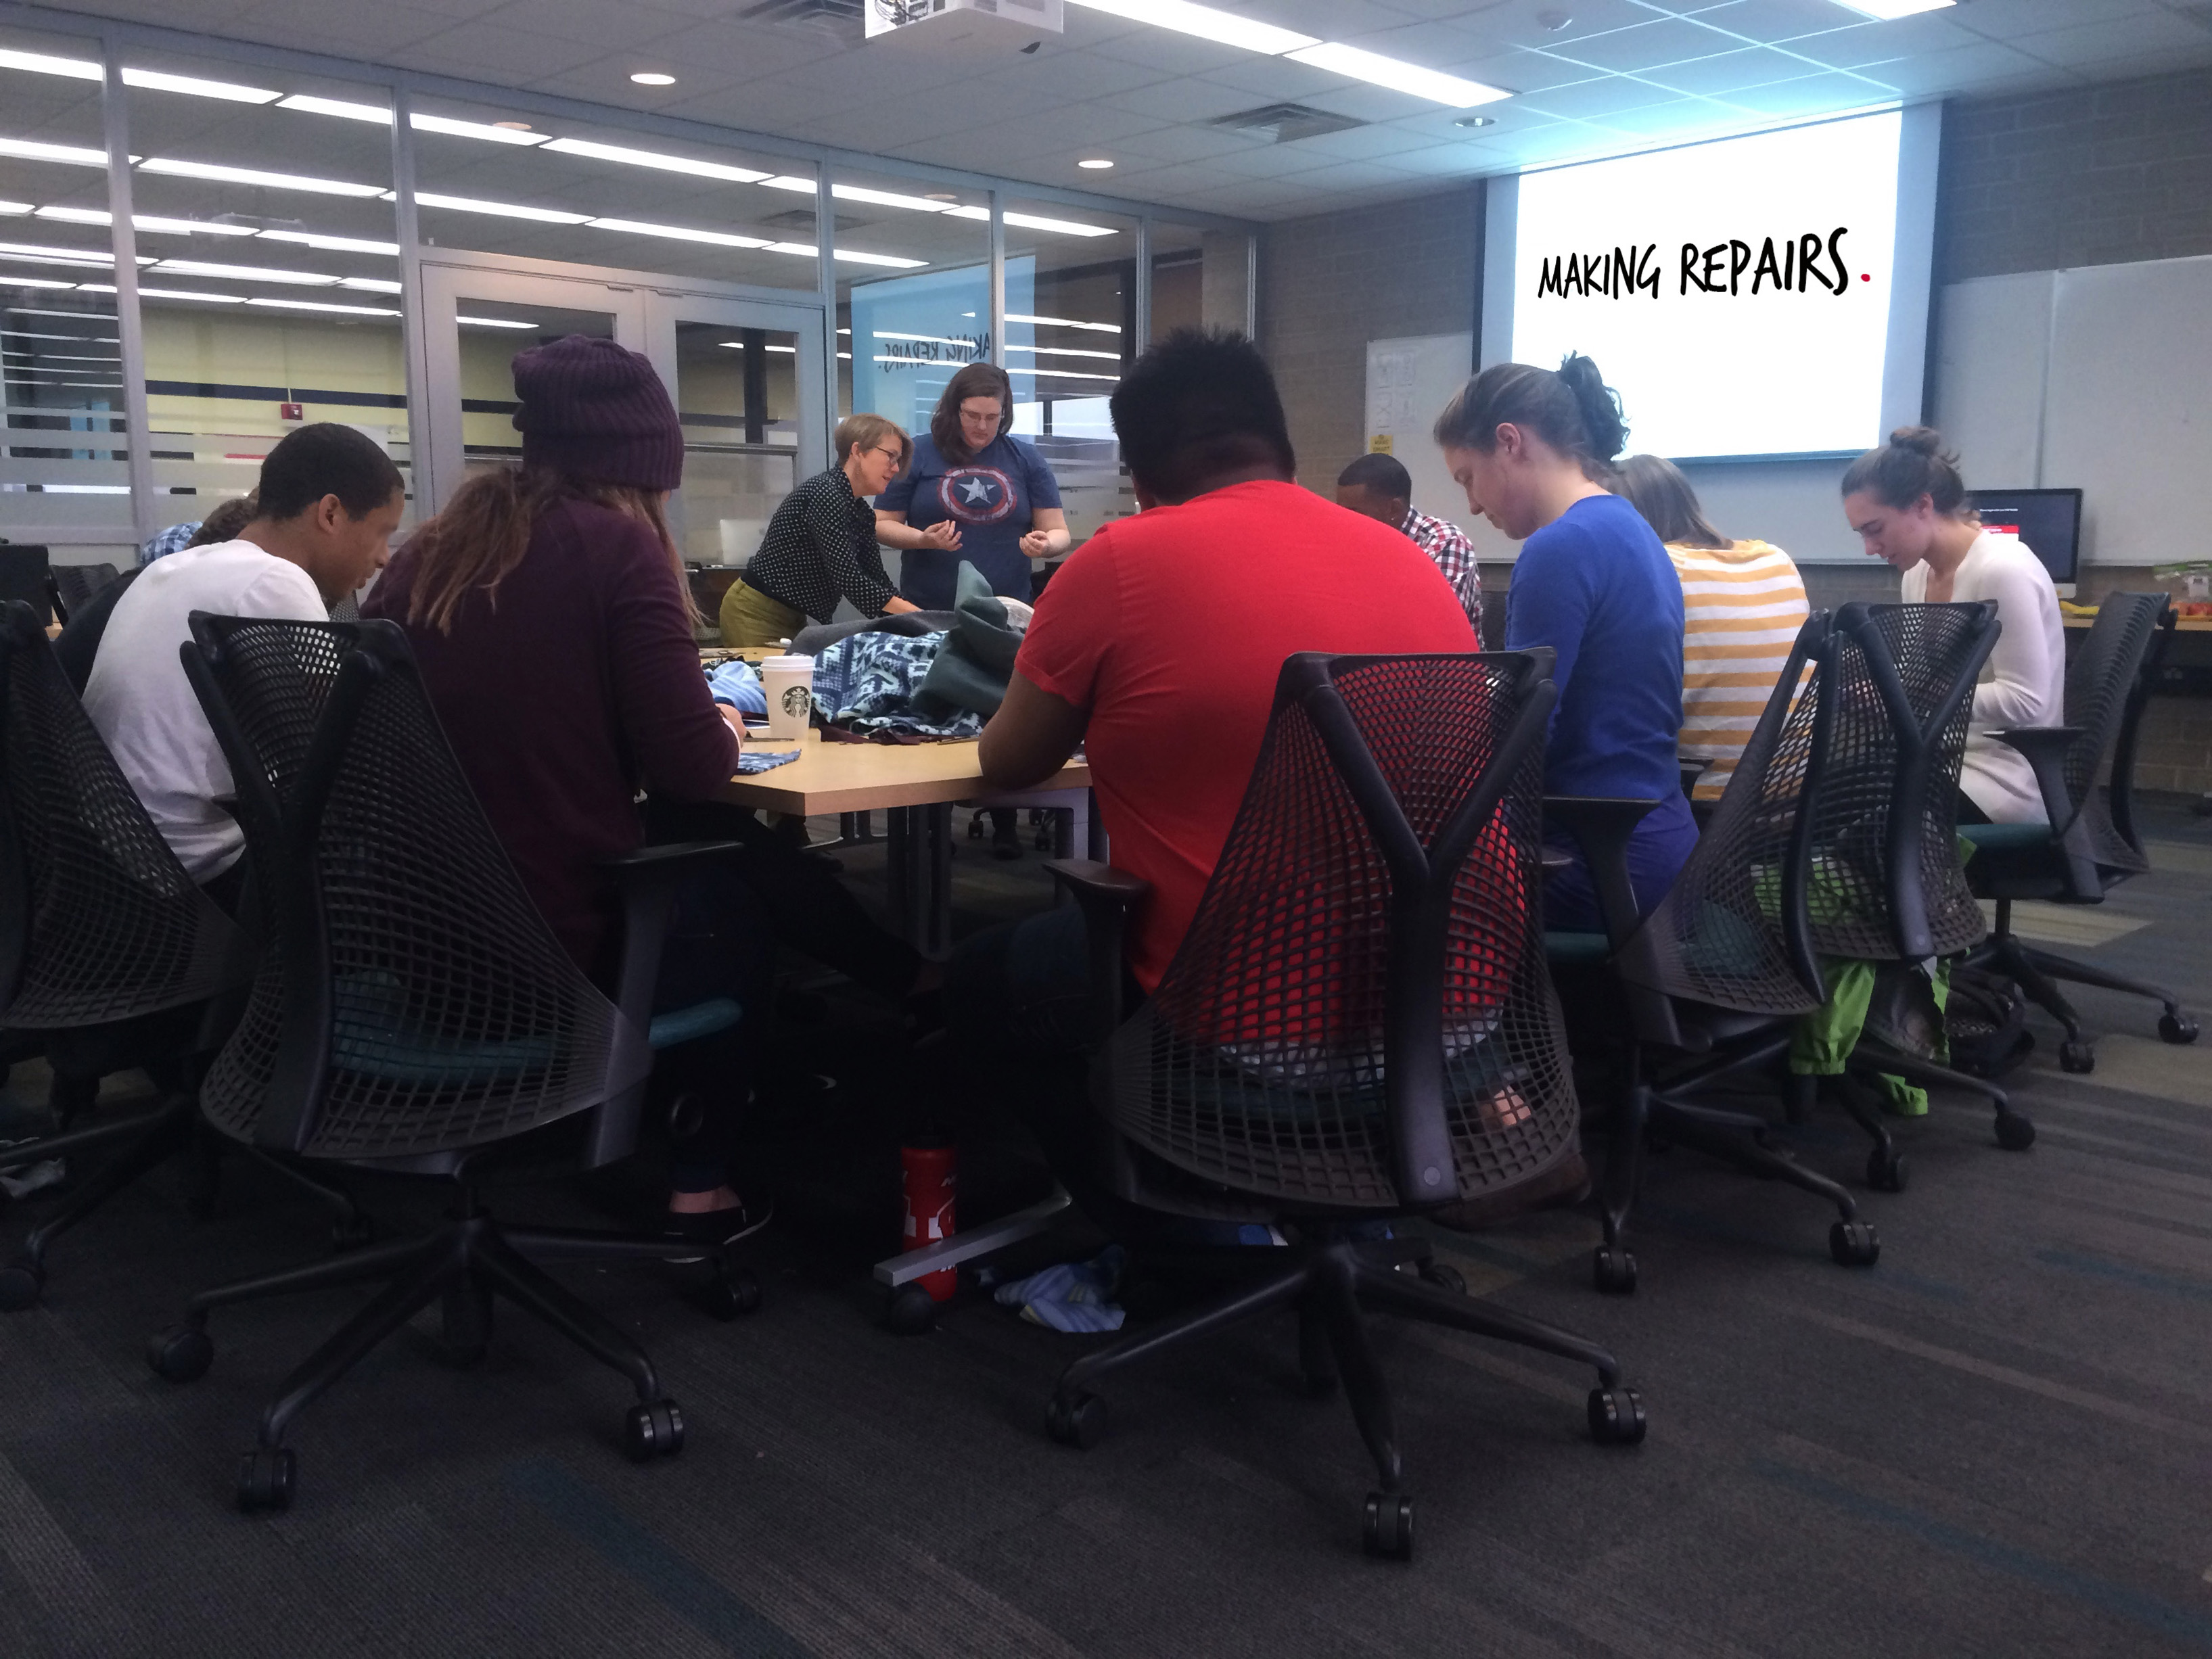 Teens and UW Students in Making Repairs session